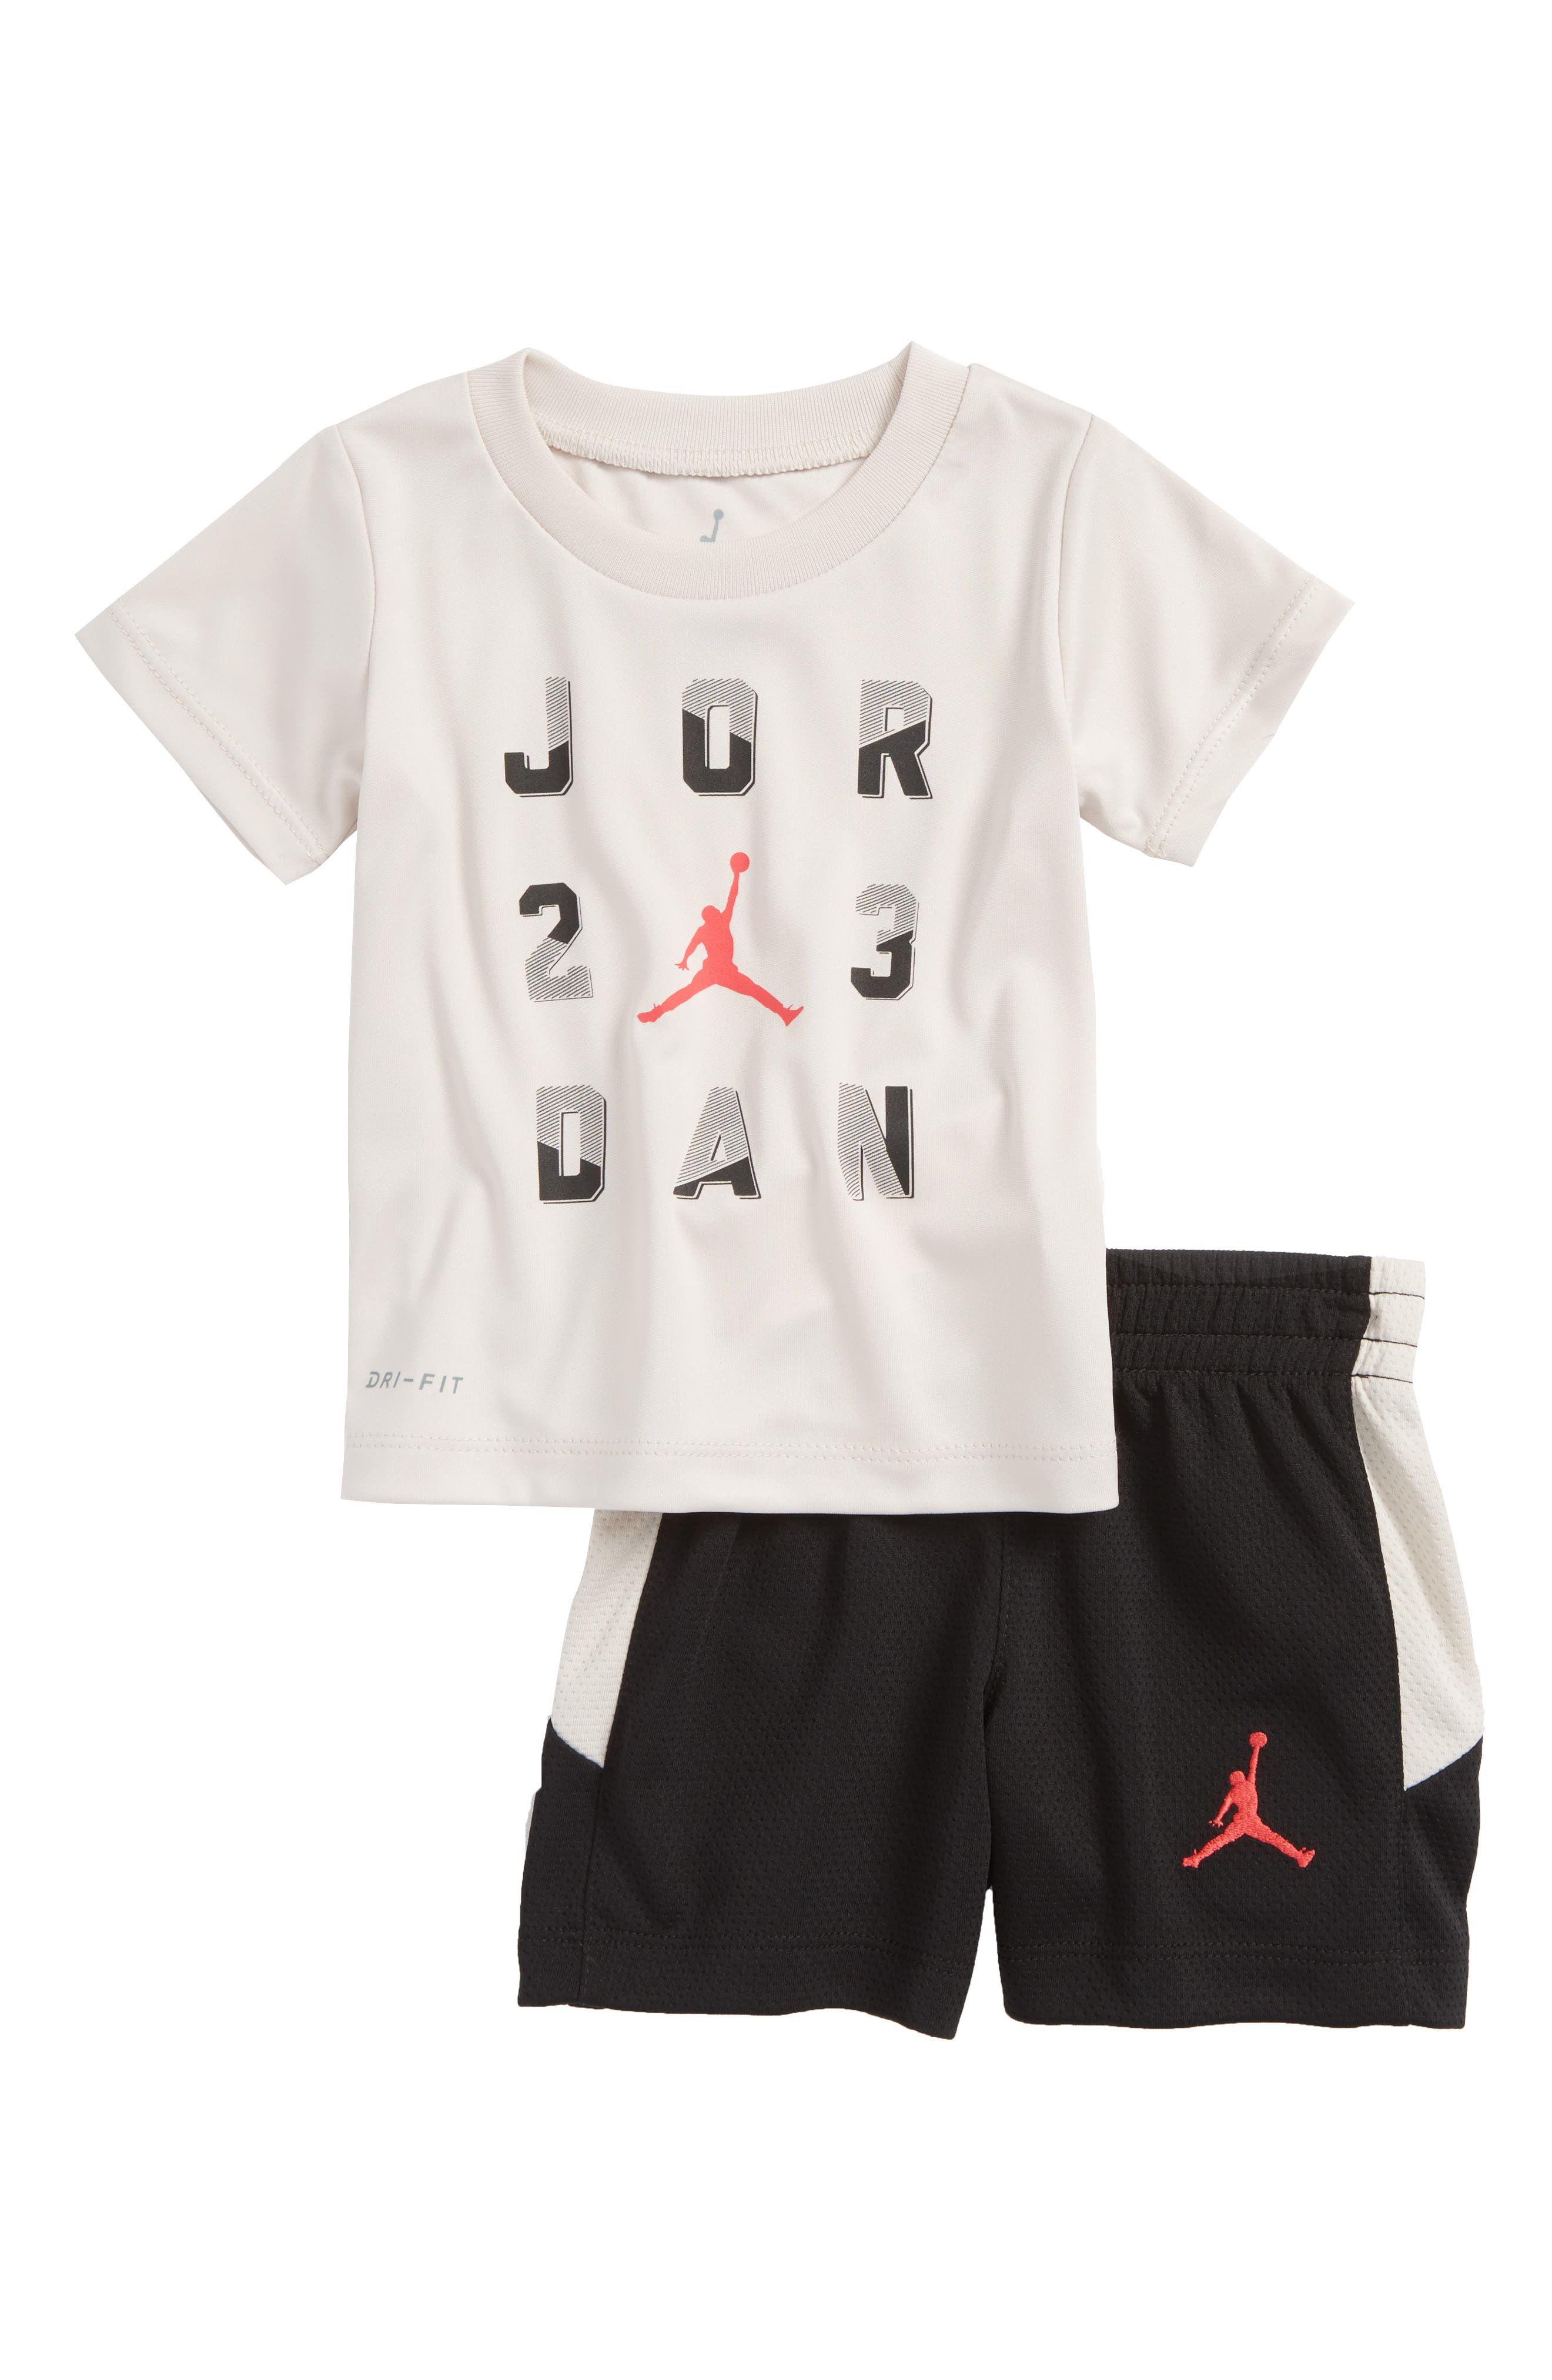 23 T-Shirt & Shorts Set,                         Main,                         color, 004